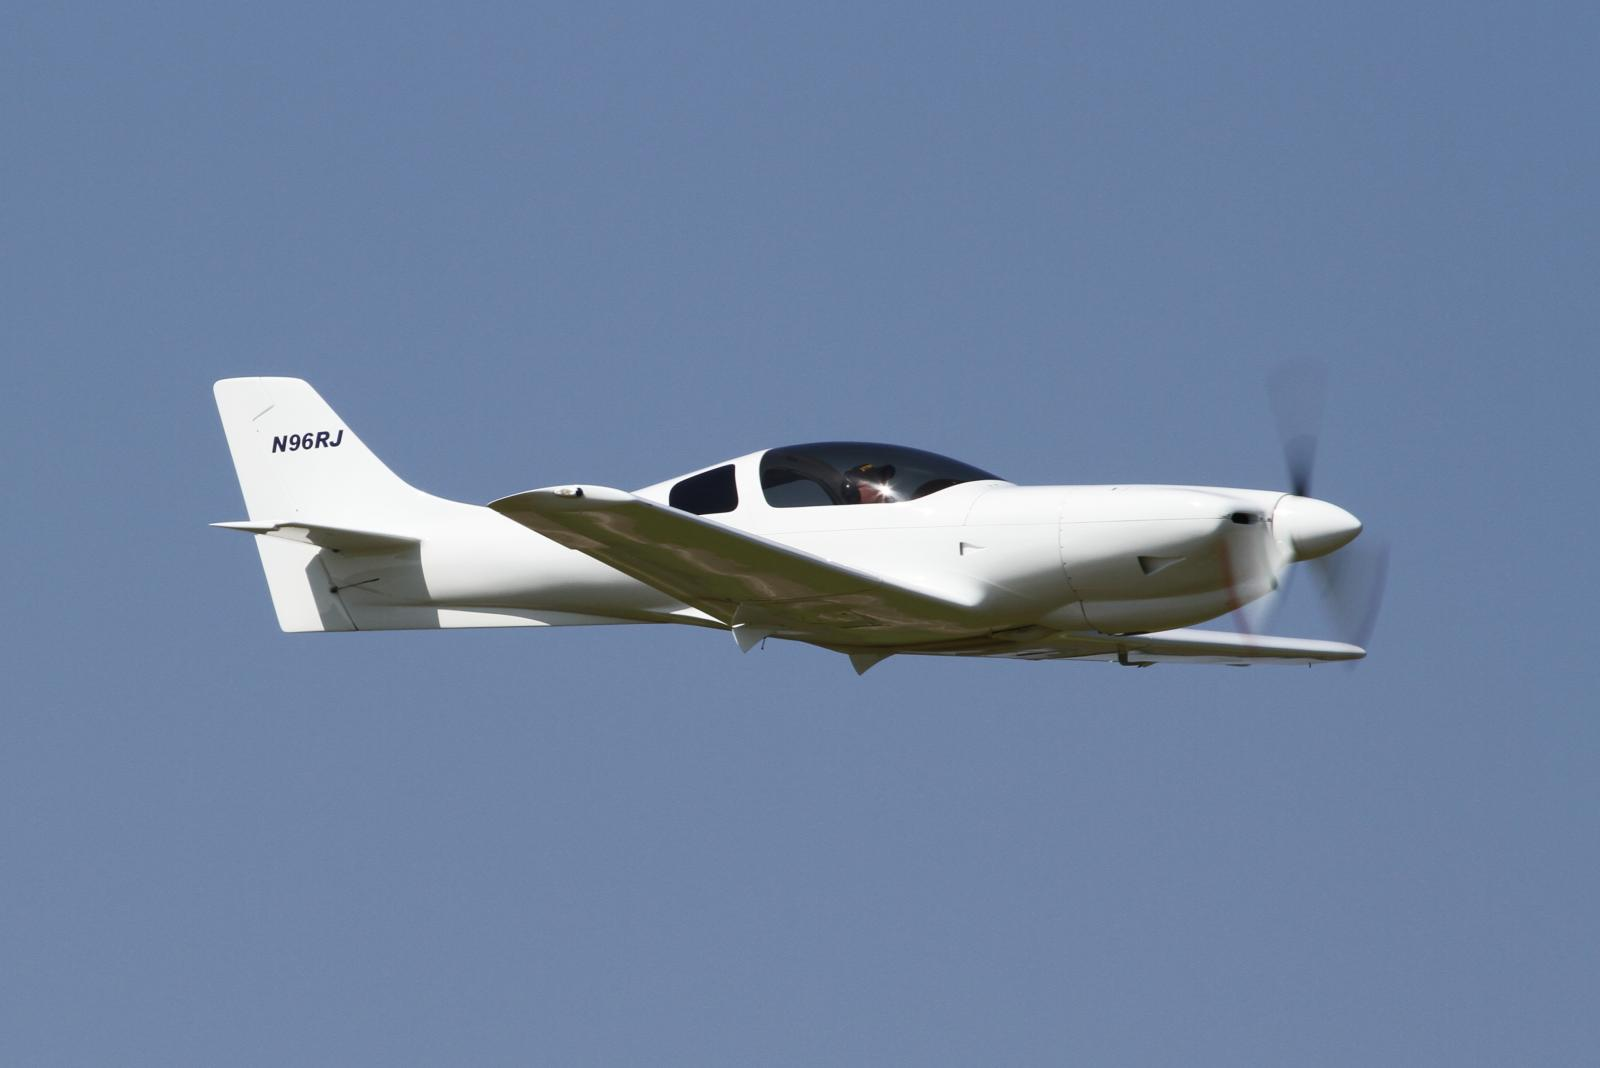 File Lancair 235 N96rj 1 Jpg Wikimedia Commons